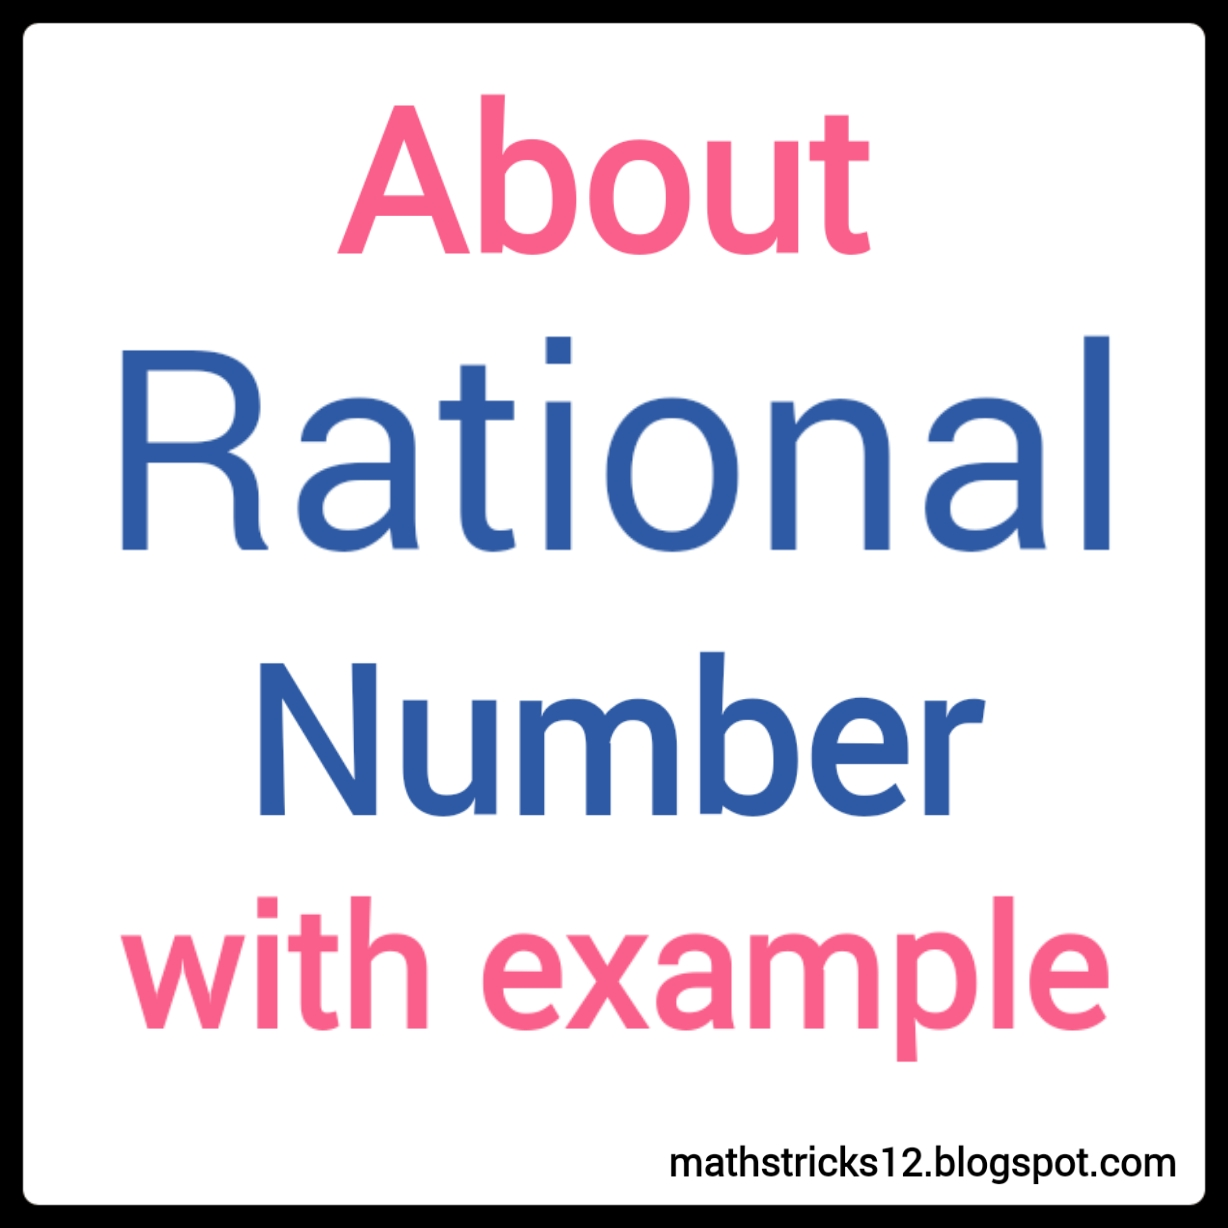 Rational Numbers Defination With Examples Maths Tricks In Hindi Learn Mathematic In Hindi